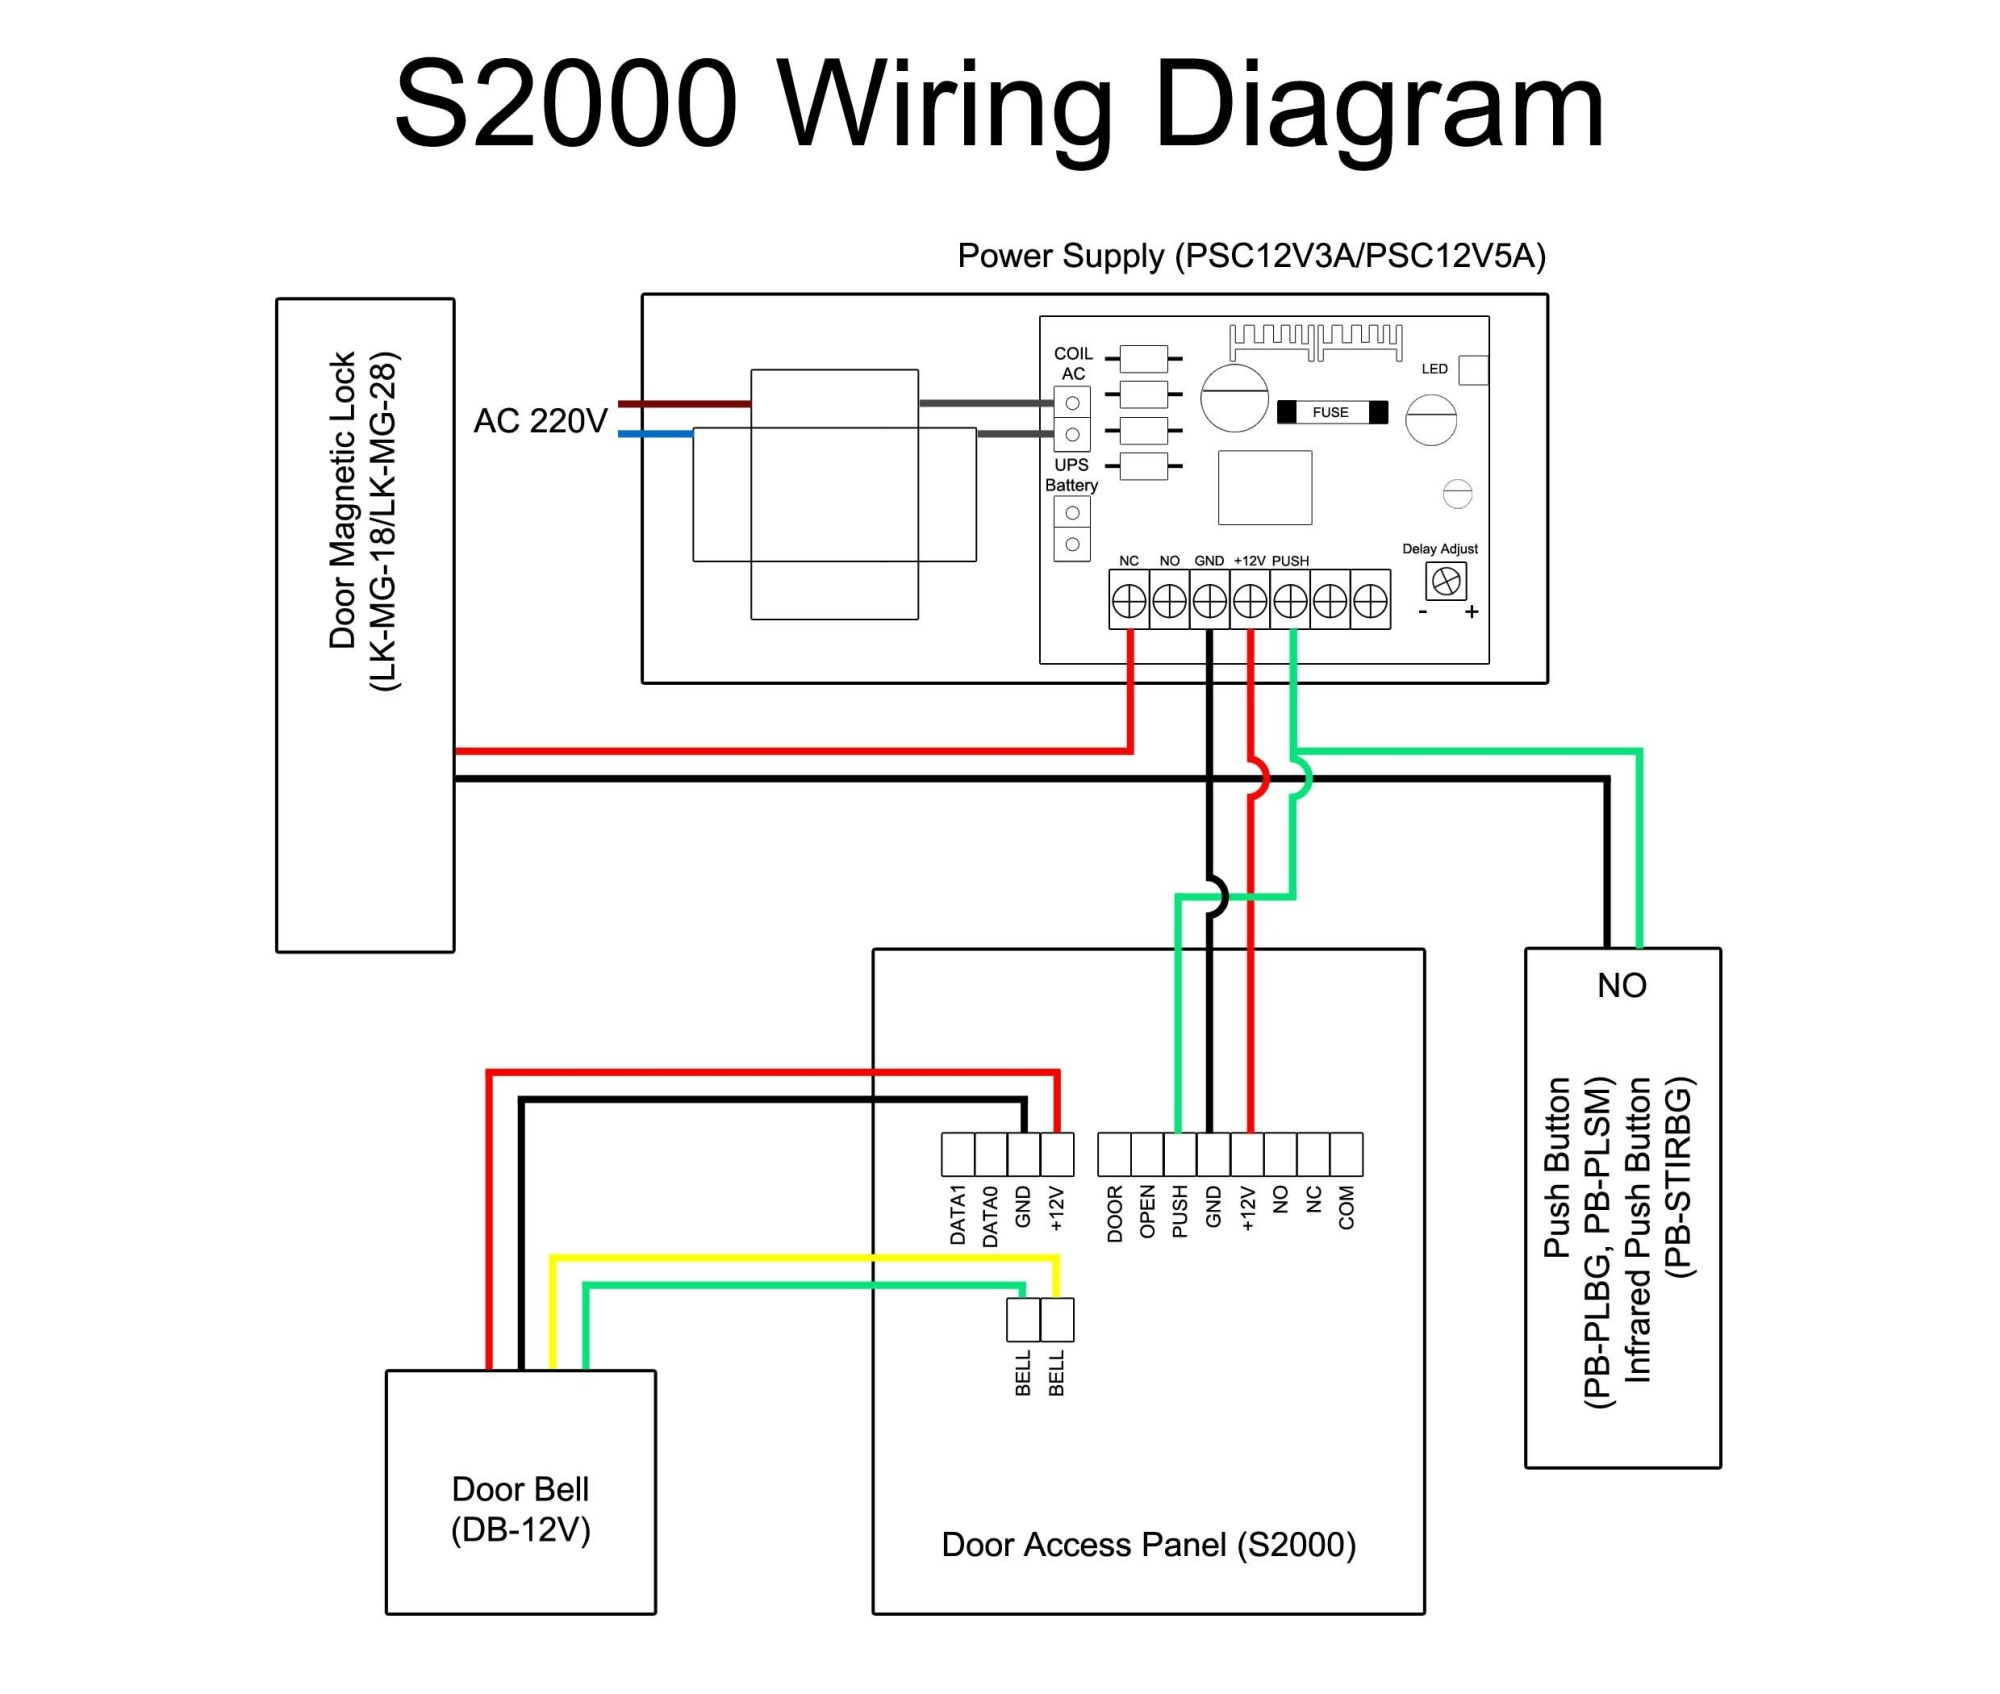 hight resolution of pelco cctv wiring diagram wiring diagram expertpelco wiring diagram wiring diagram paper pelco cctv wiring diagram